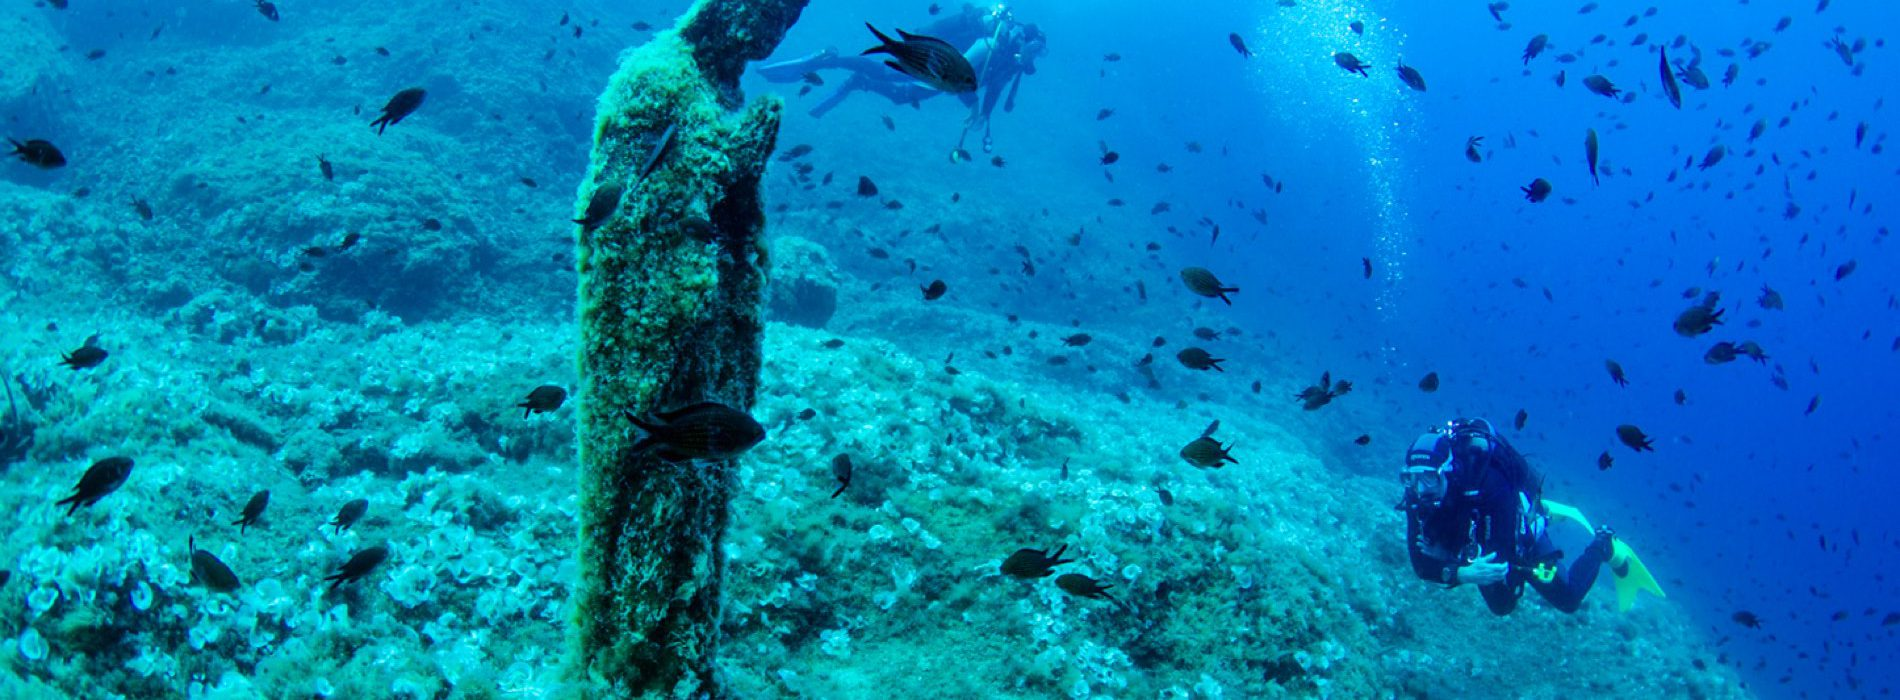 Boat Tour and Diving Tour from Sorrento (5 hour duration with 2 dives)